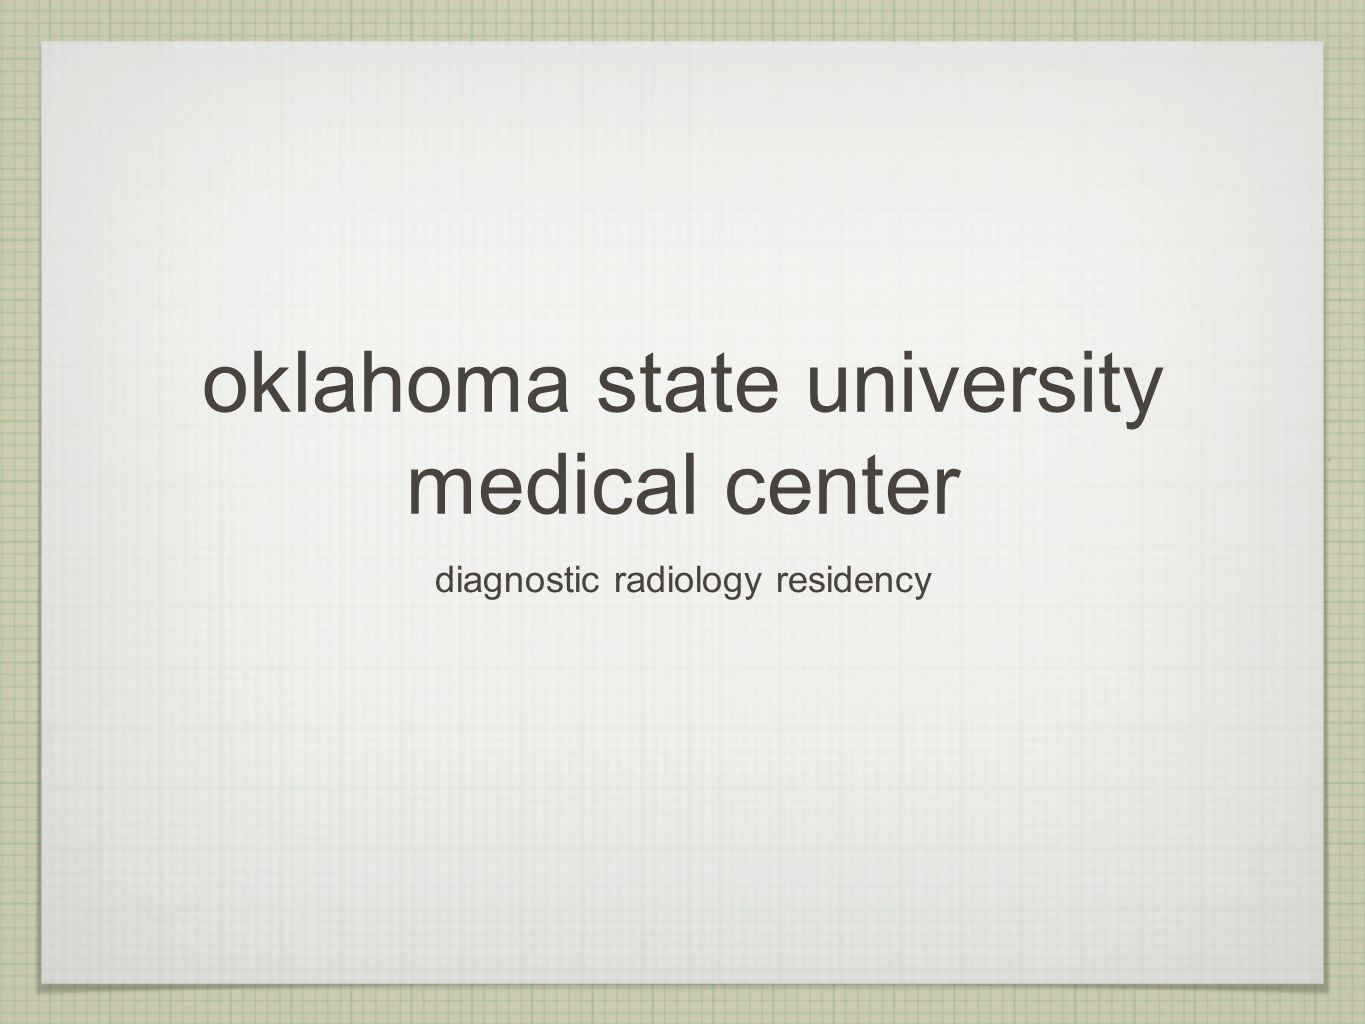 Oklahoma state university medical center diagnostic